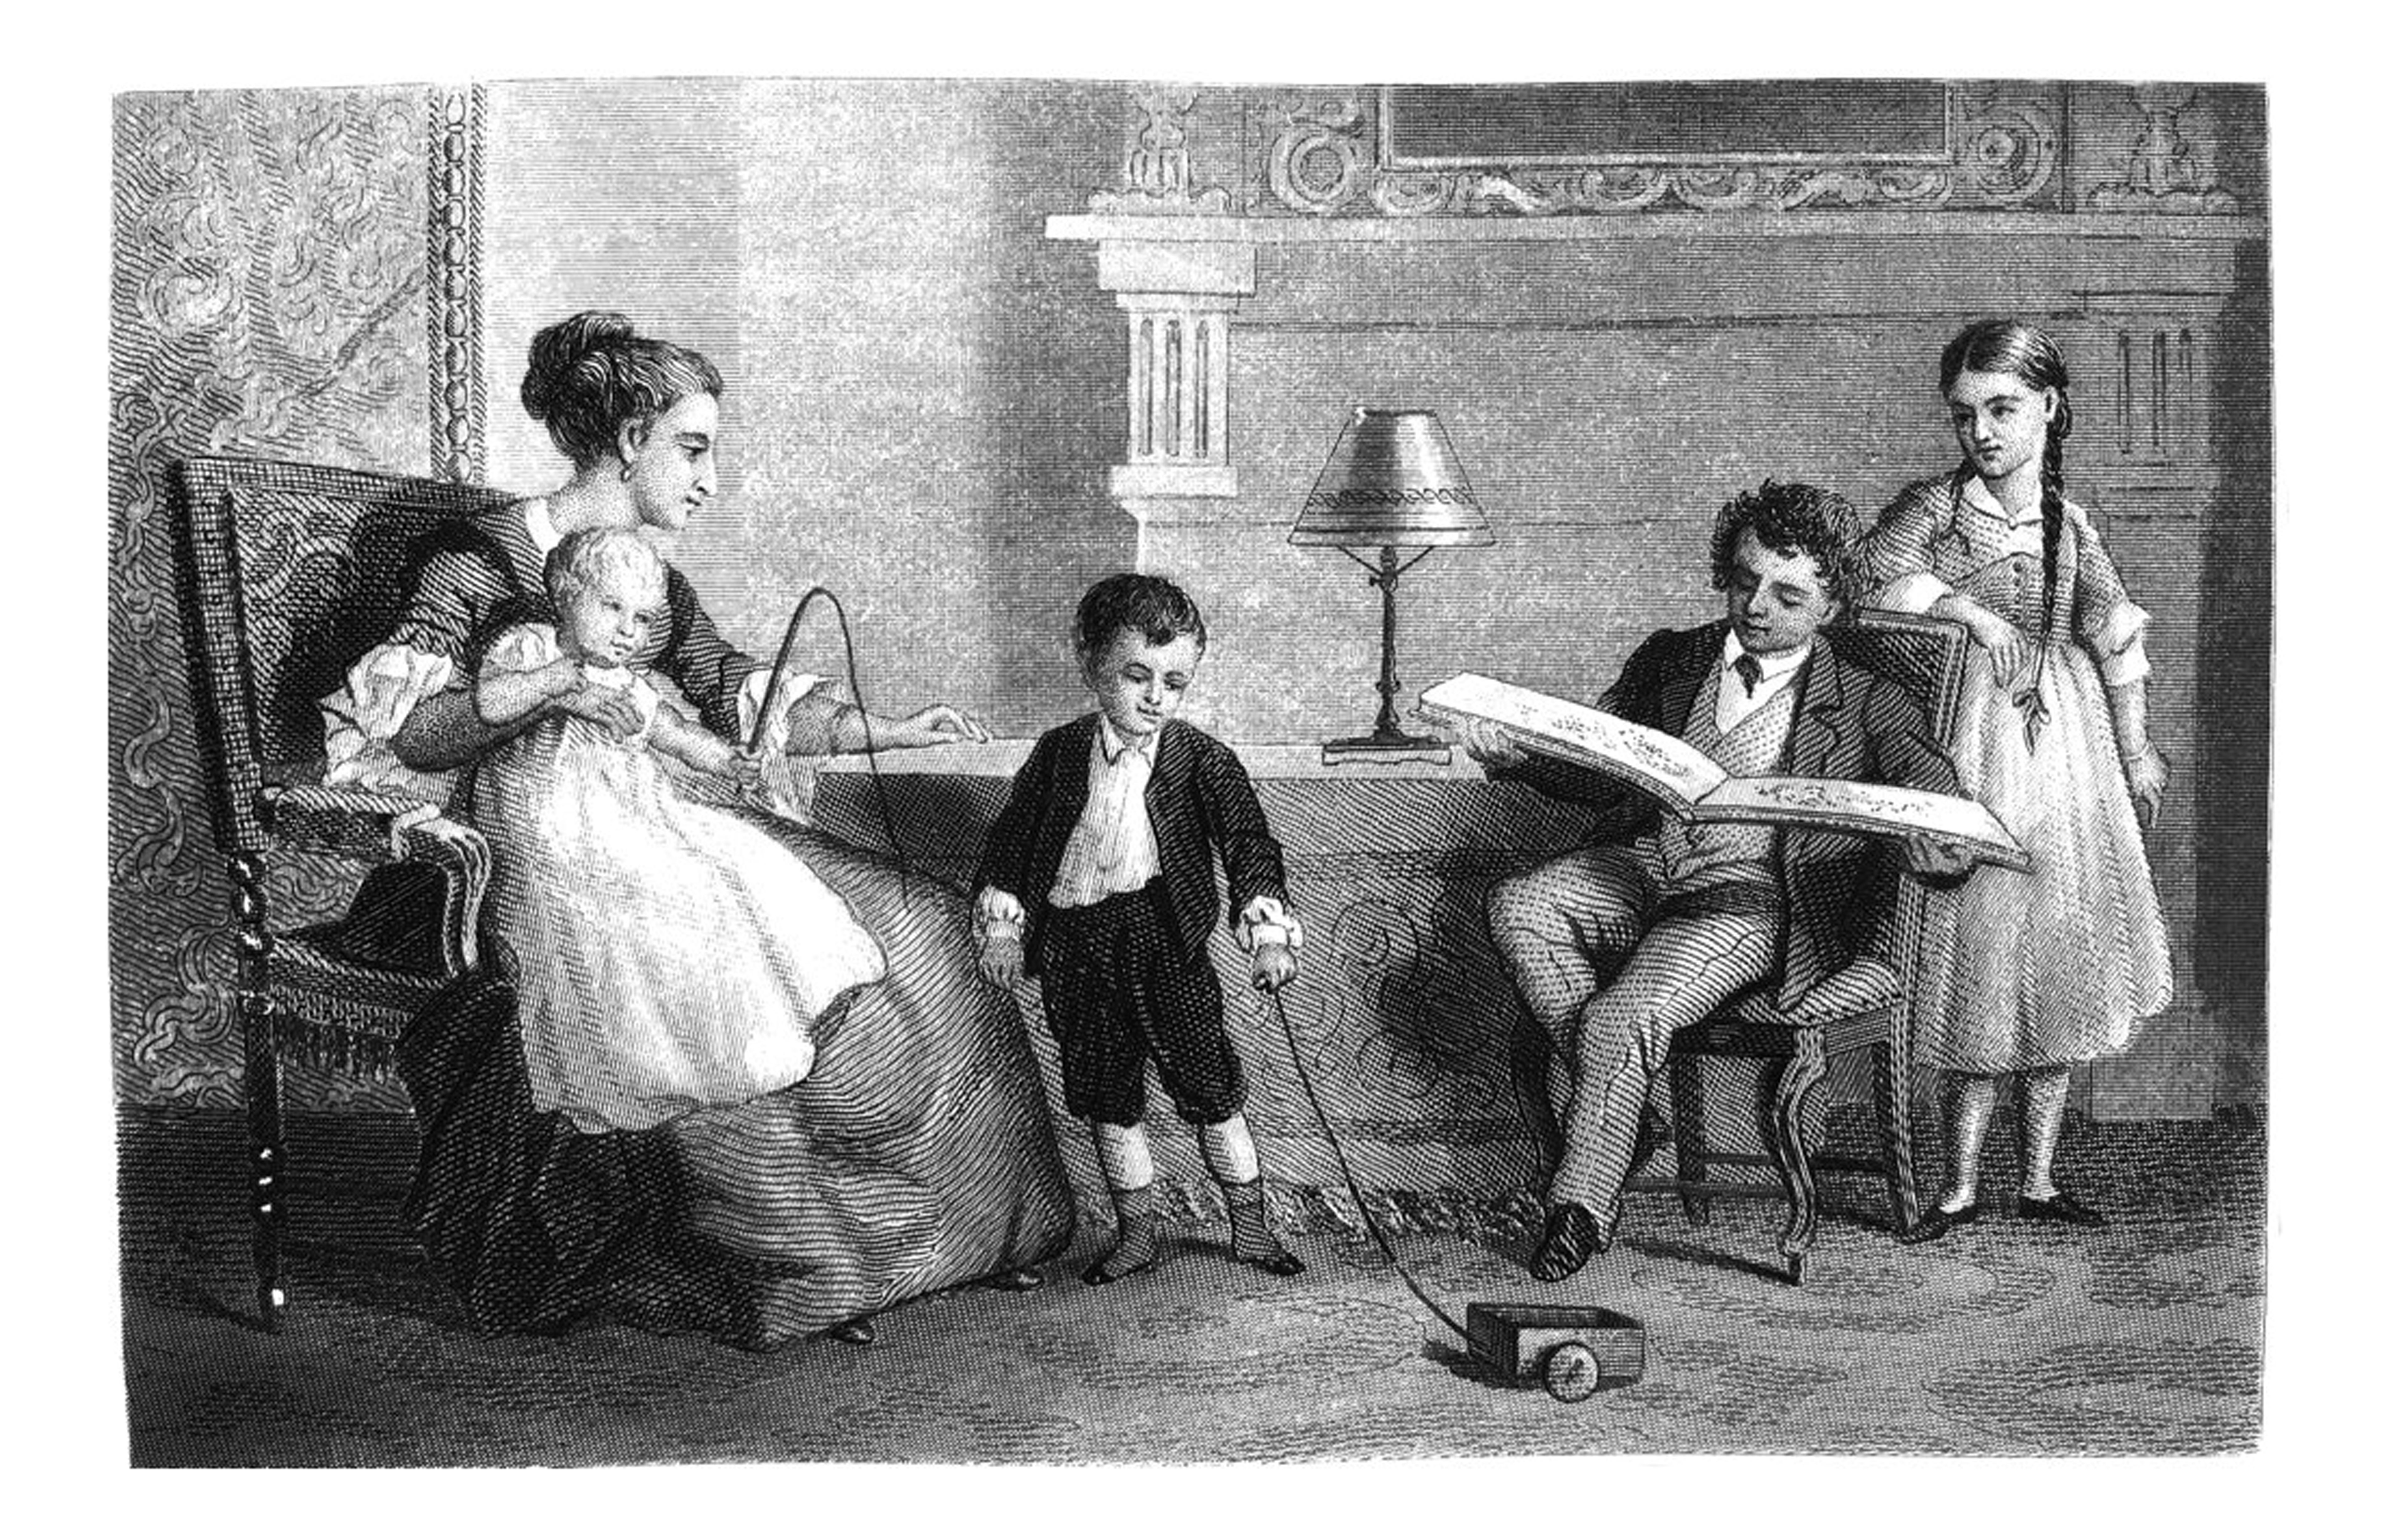 First Century United States illustrations - 1873 - A family at home - parents and children